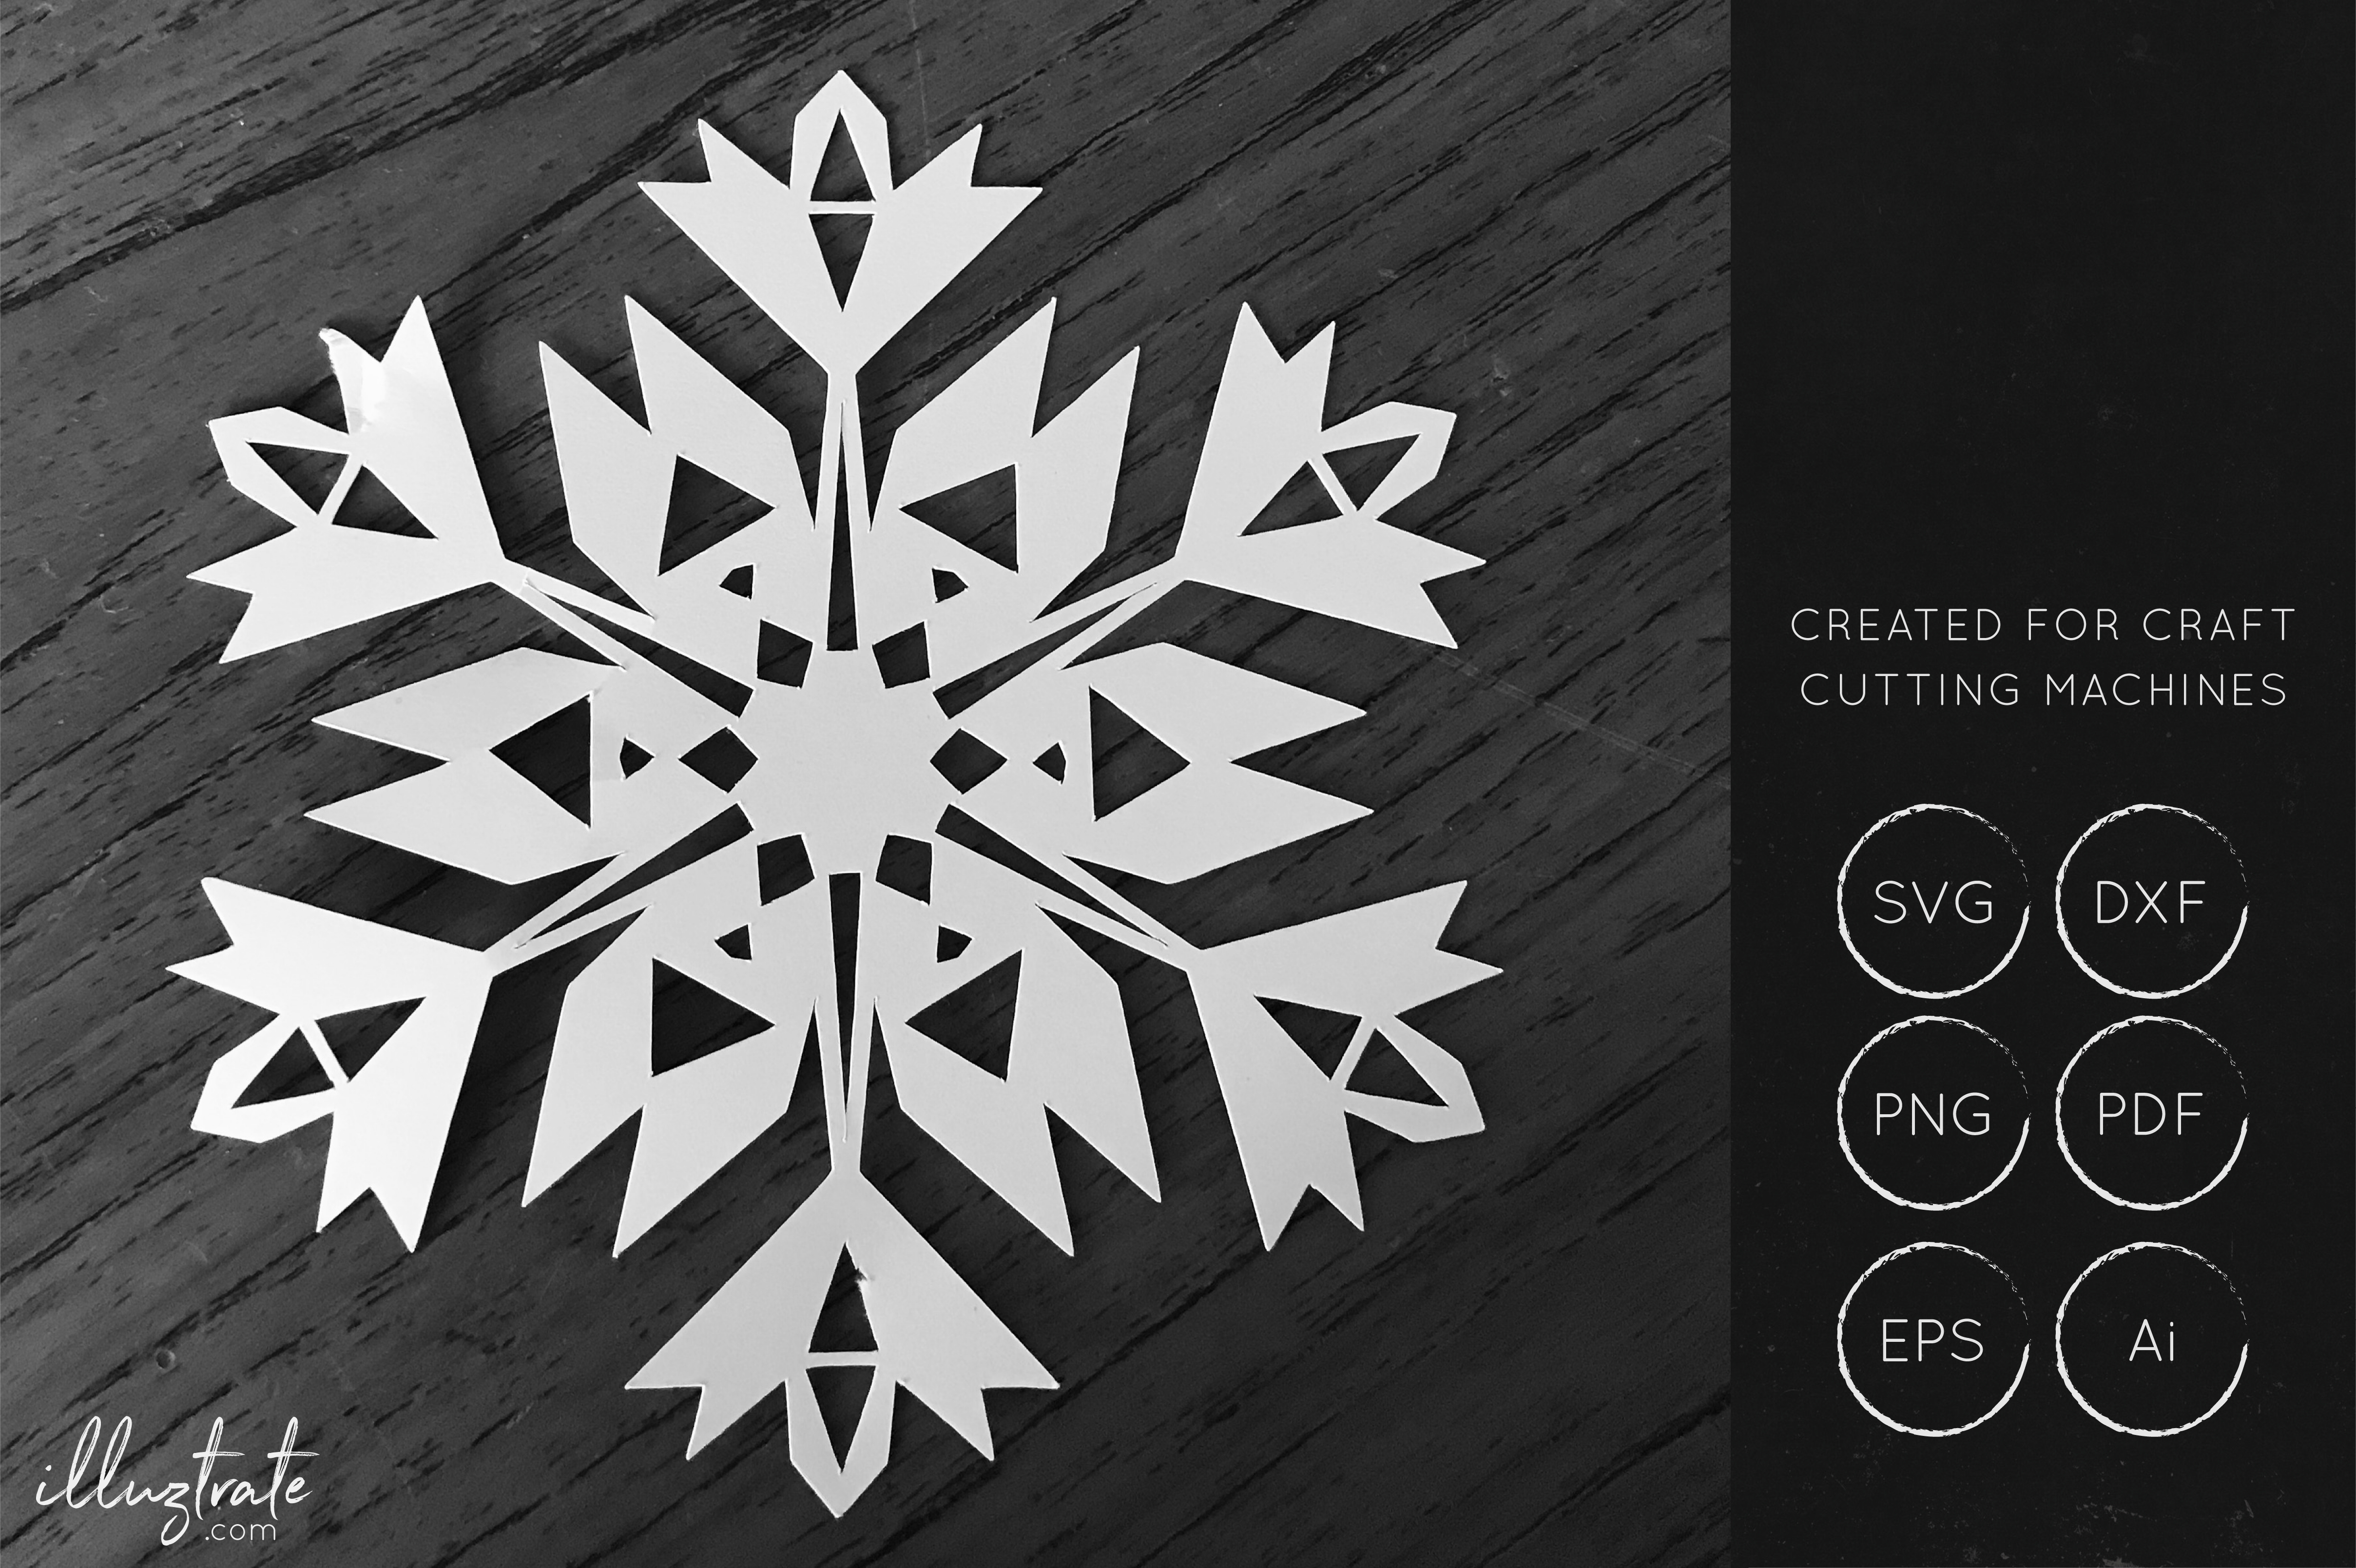 Snowflake SVG Cut File Bundles - Christmas SVG - Snowflakes example image 12